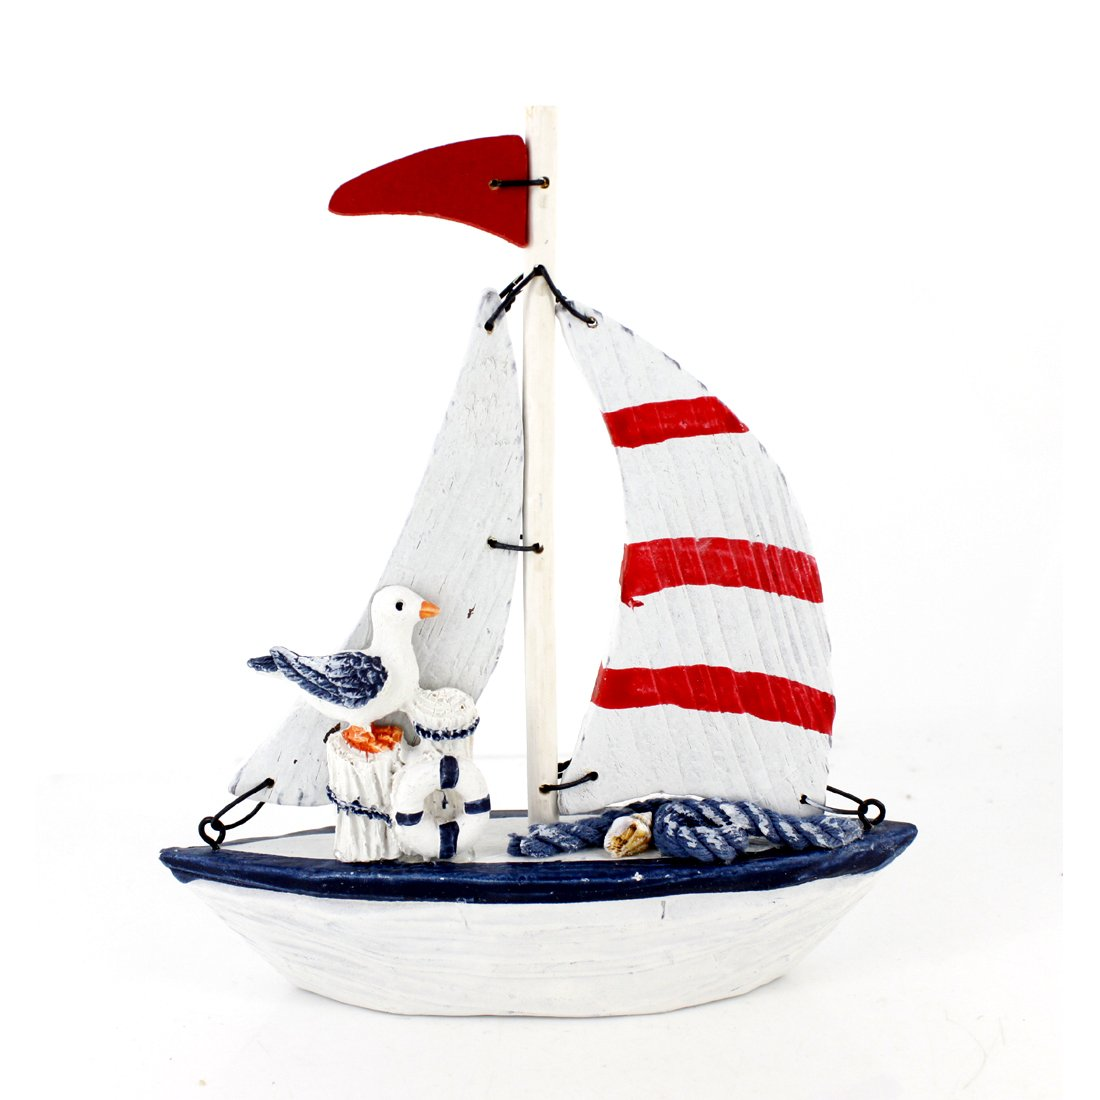 5.6 Inches High Fun Nautical Decorative Wood Sail Boat Ornament with Sea Bird Seabird for Home Decoration,fully Assembled (Red) homesweeter1900